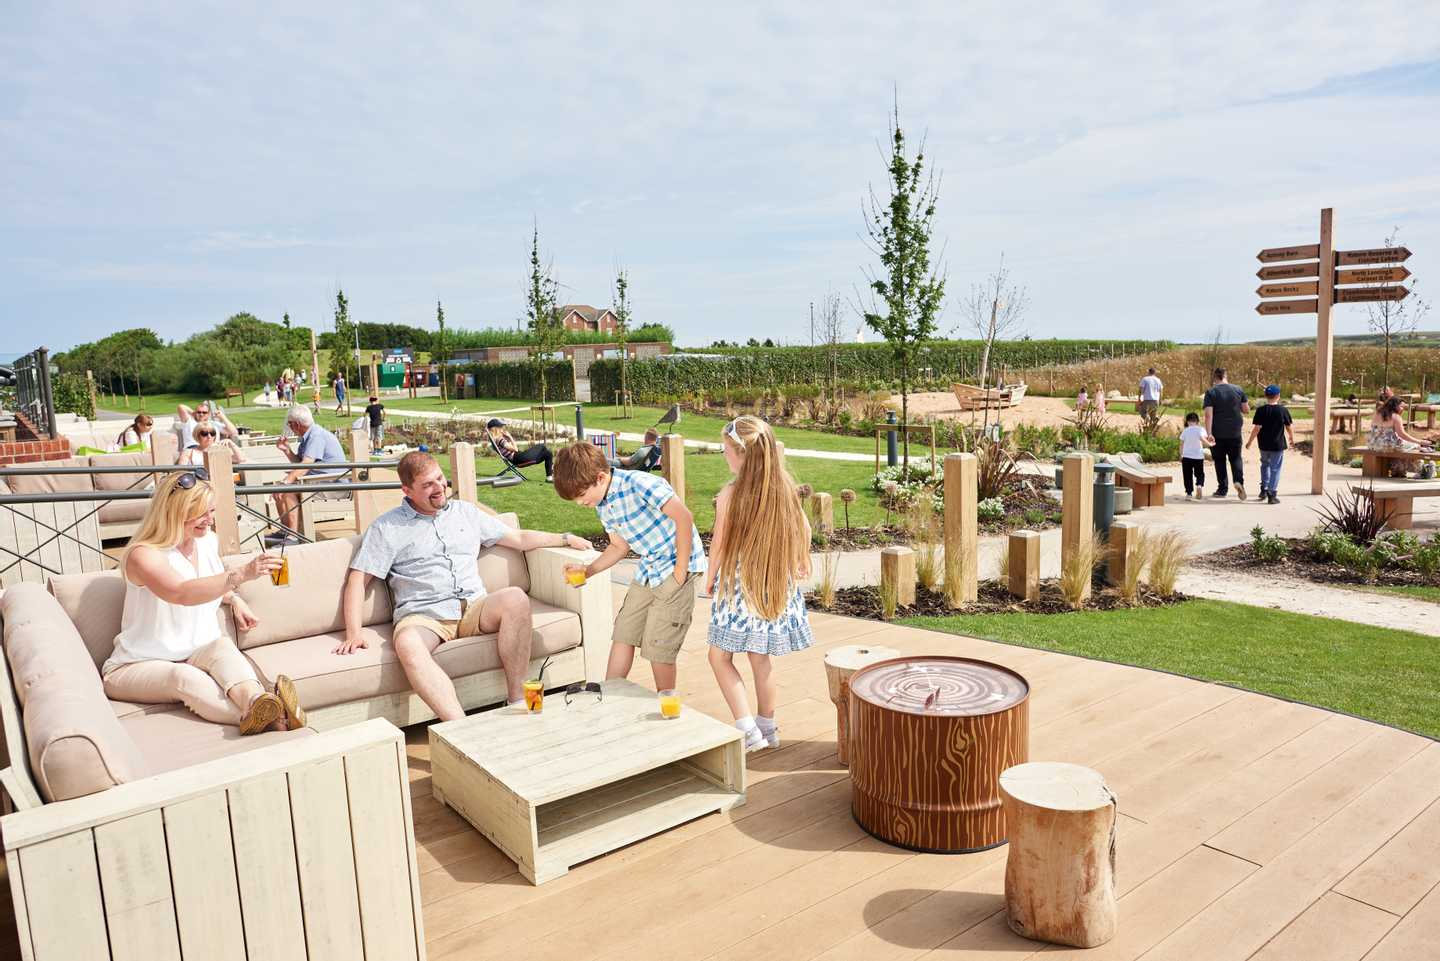 Guests relaxing on The Lighthouse terrace area at Thornwick Bay